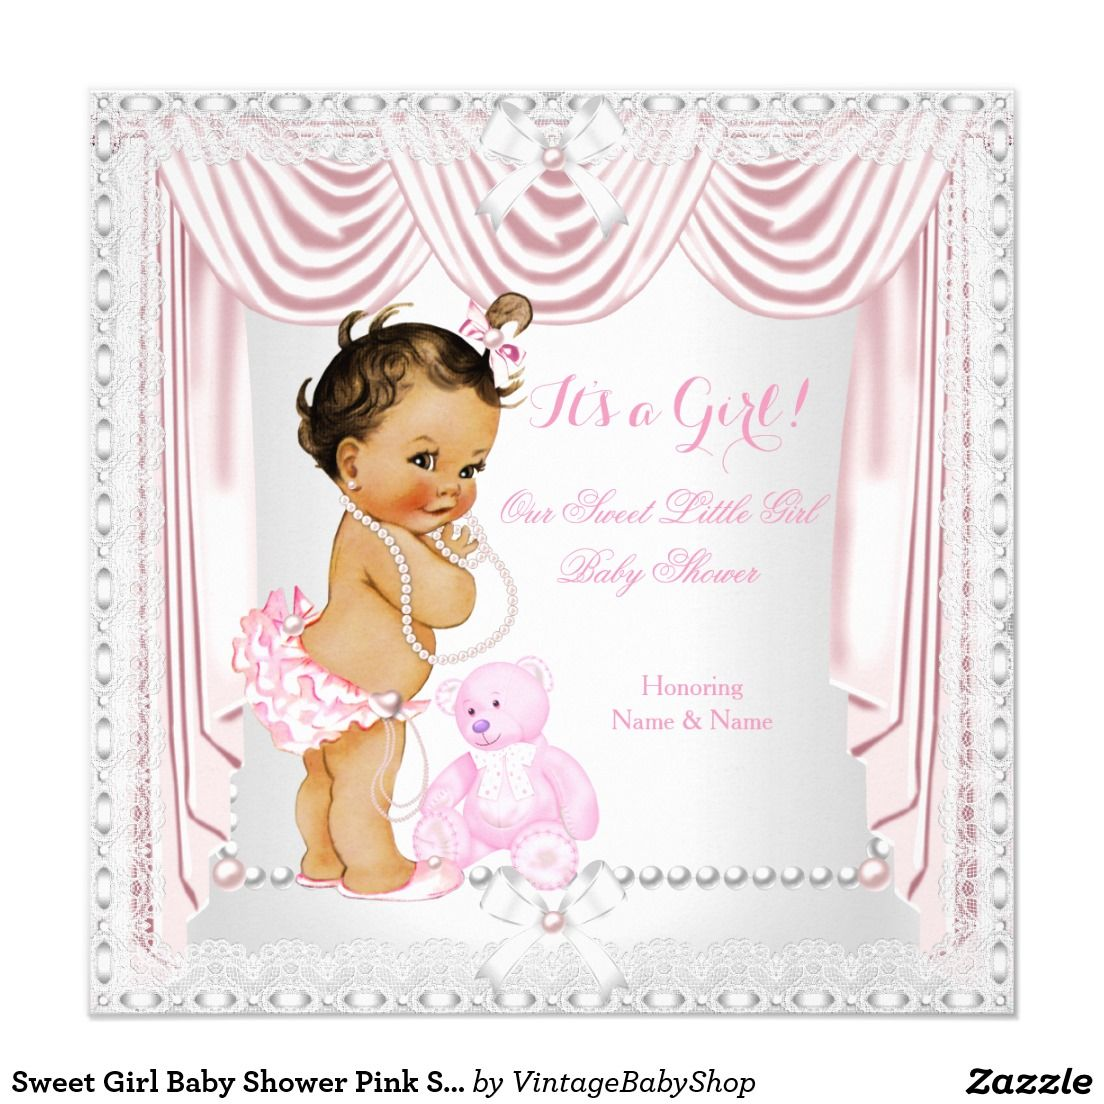 Sweet Girl Baby Shower Pink Satin Brunette Baby 5.25x5.25 Square ...